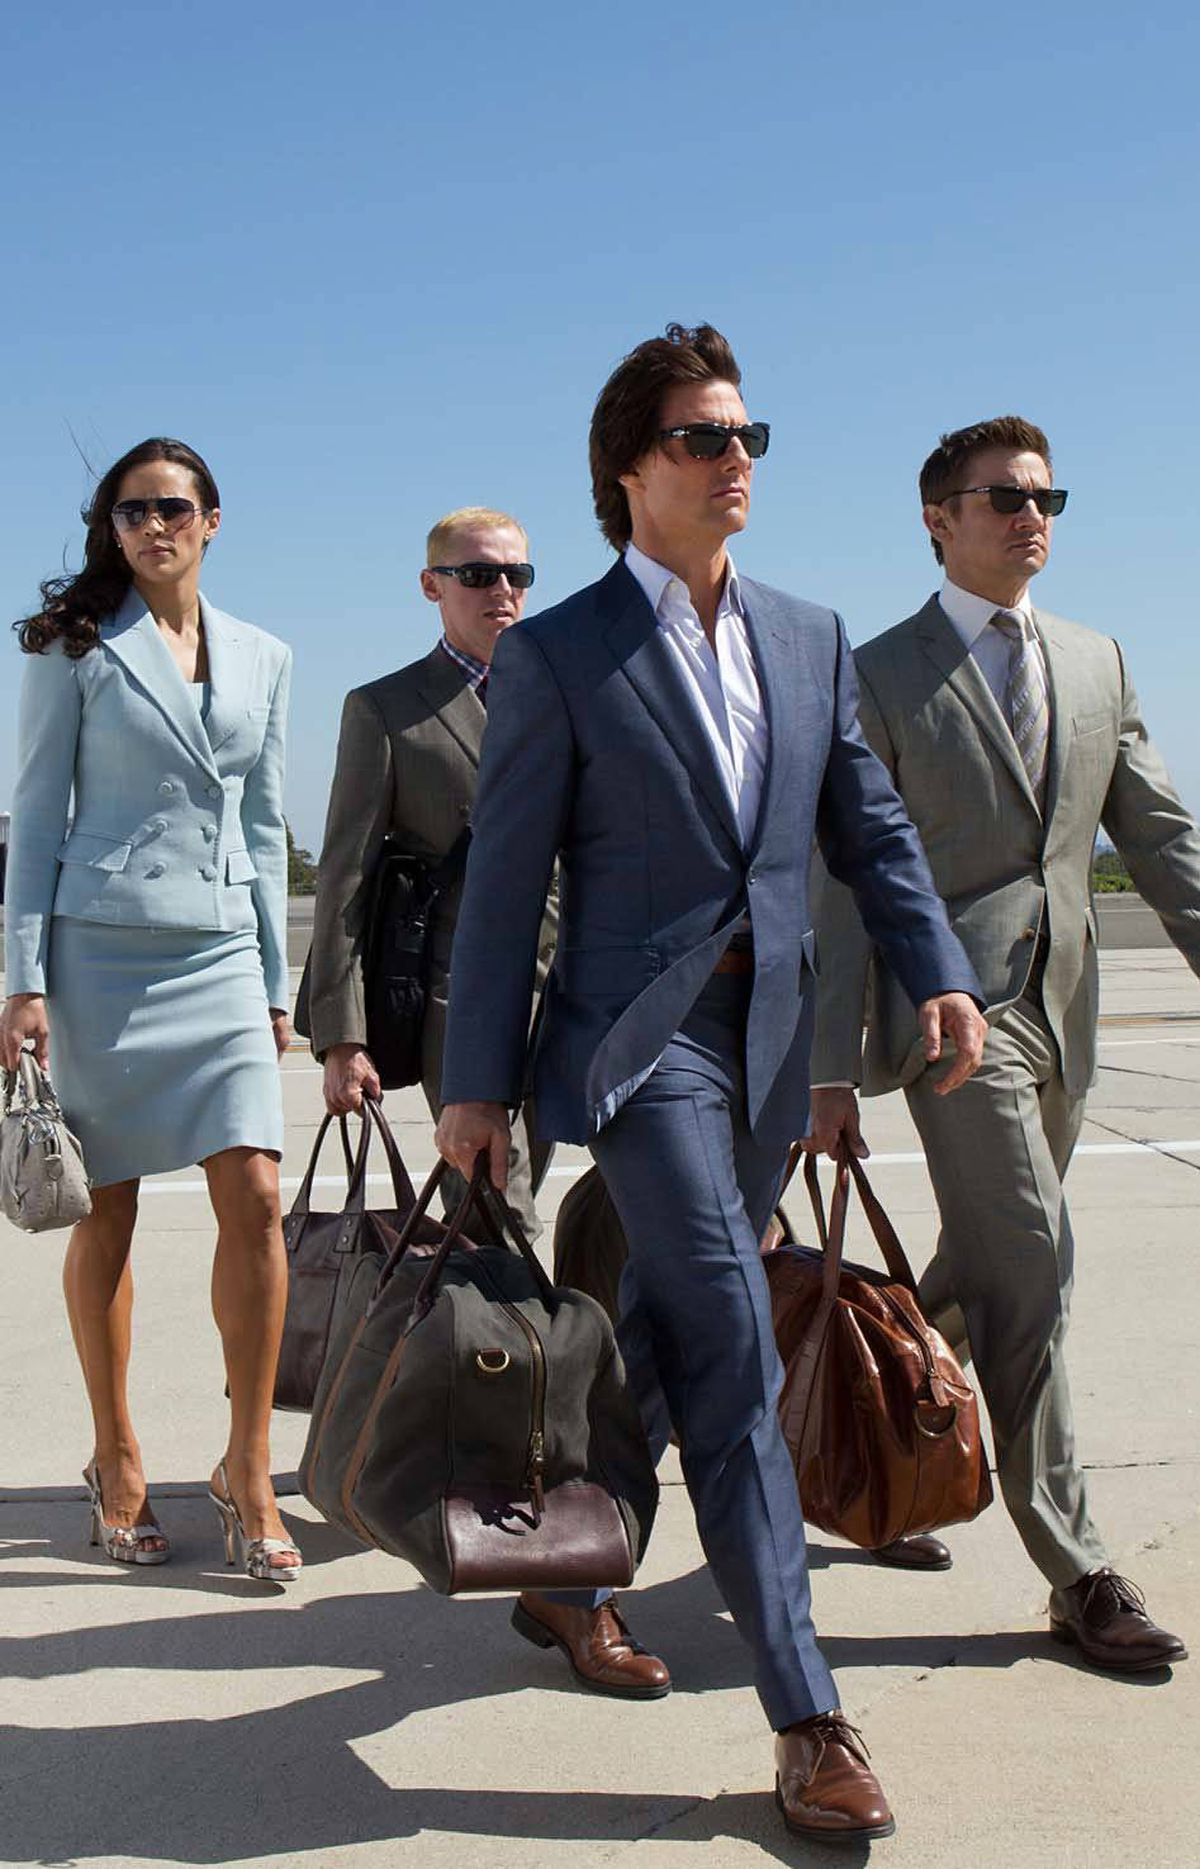 URGENT! We interrupt this photo gallery to bring you the news that Tom Cruise was not, repeat not, nominated this week for the Oscar for Best Pompous Walk. And now back to our regularly scheduled inanity.